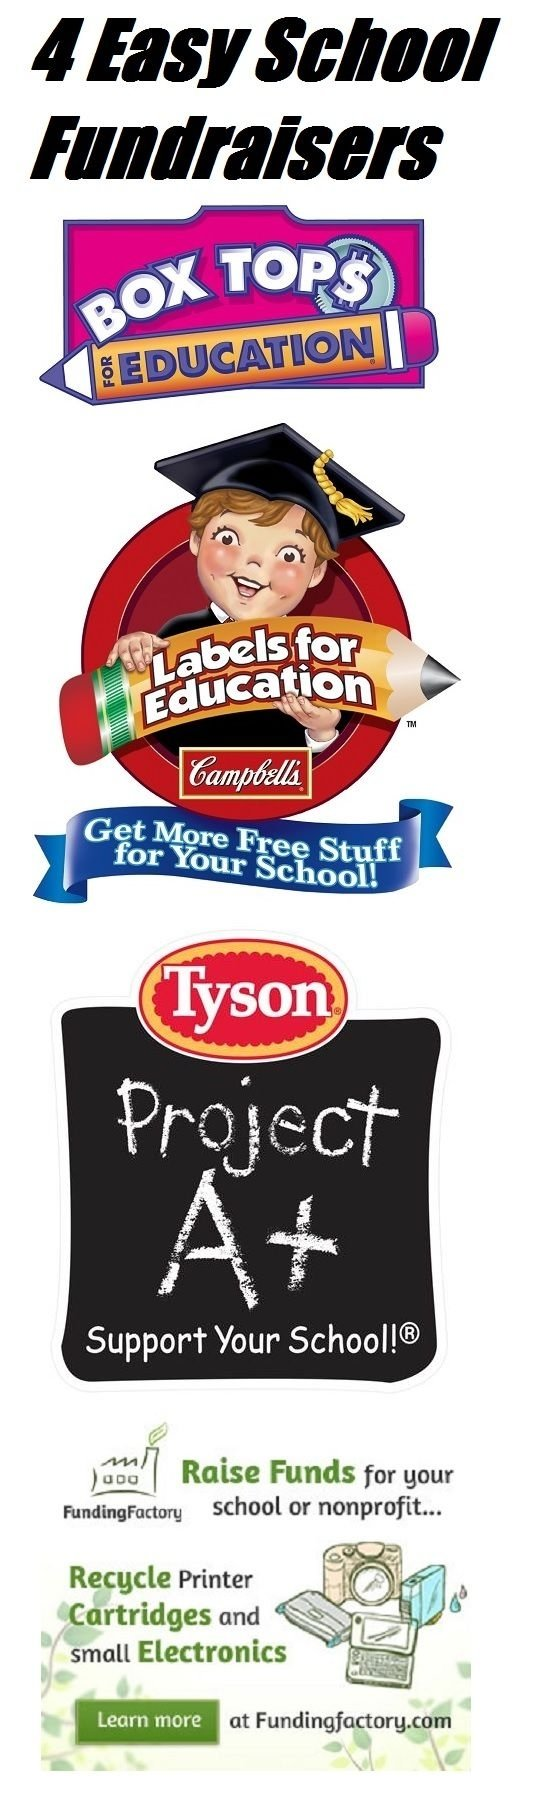 10 Awesome Easy Fundraising Ideas For High School 169 best school fundraising ideas images on pinterest school 9